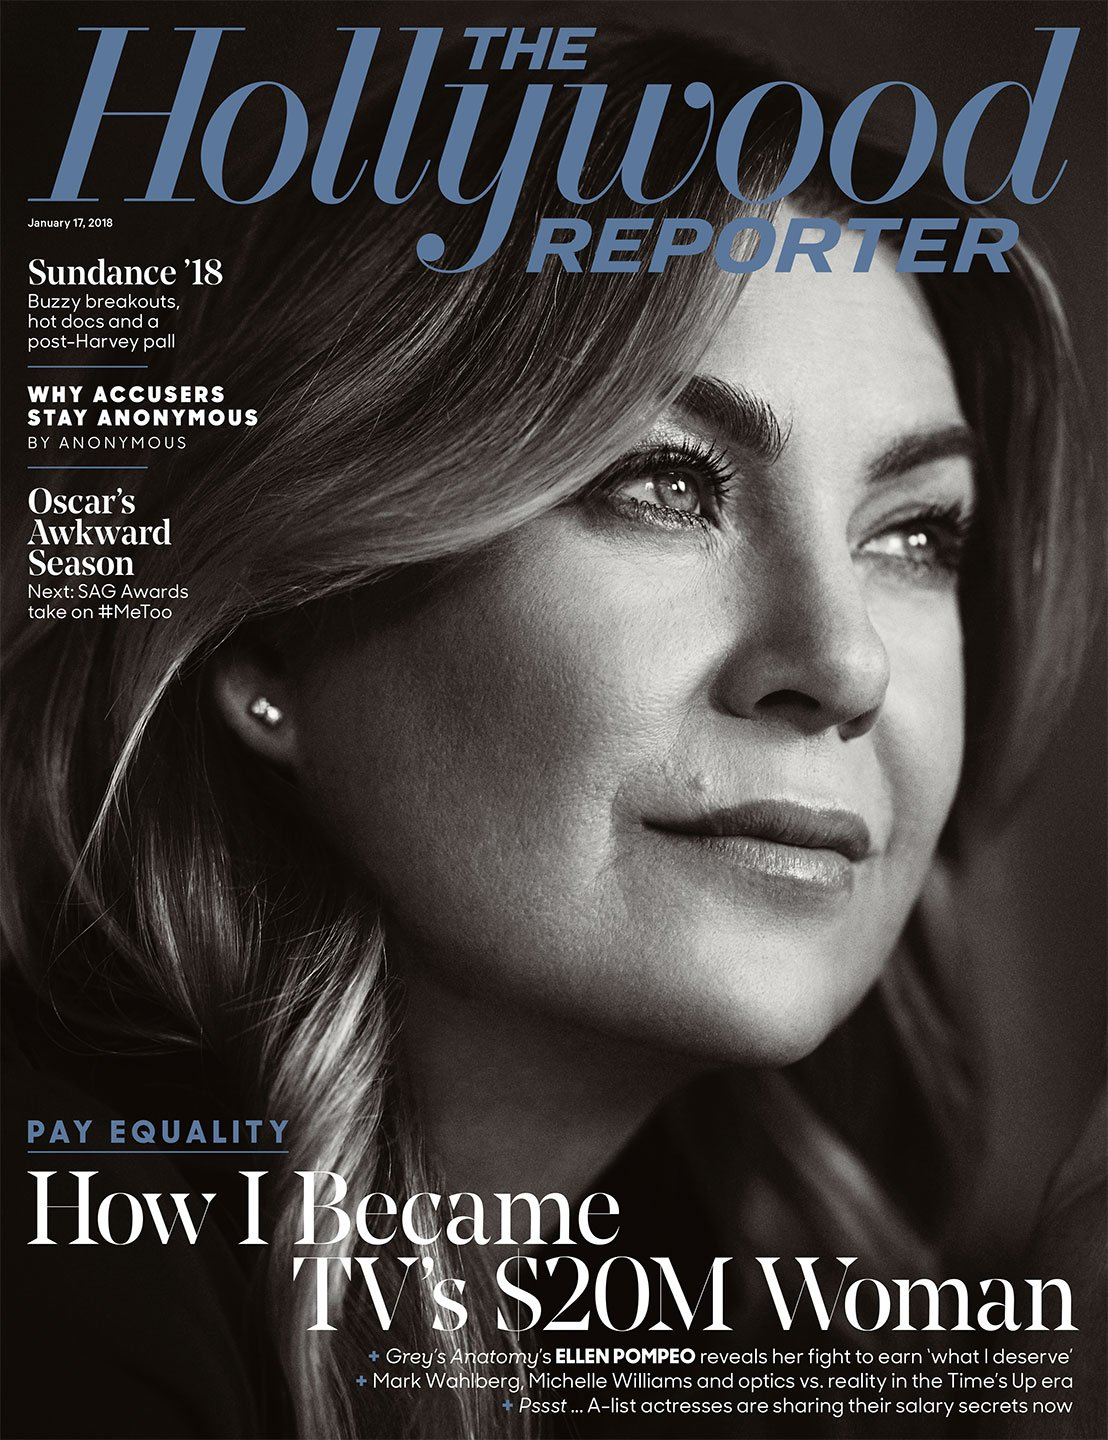 RT @THR: Cover story: Hollywood pay disparity and TV's new $20M woman, @EllenPompeo https://t.co/YIq2LU2QMP https://t.co/UvZsfflAAB